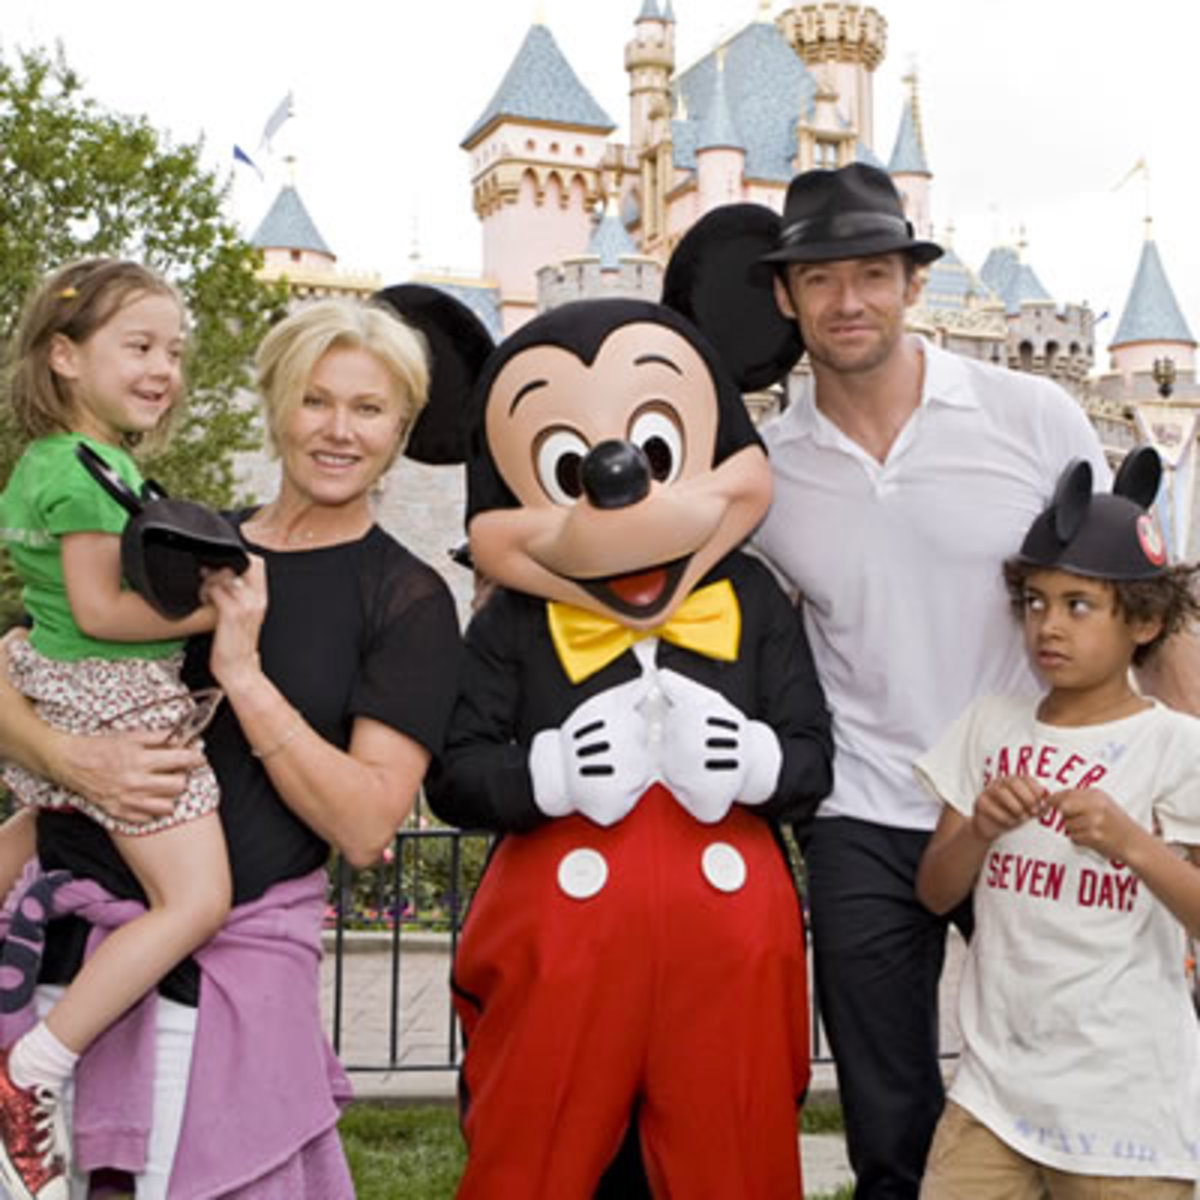 Hugh Jackman and family. Seriously, this guy just looks like an everyday family man.